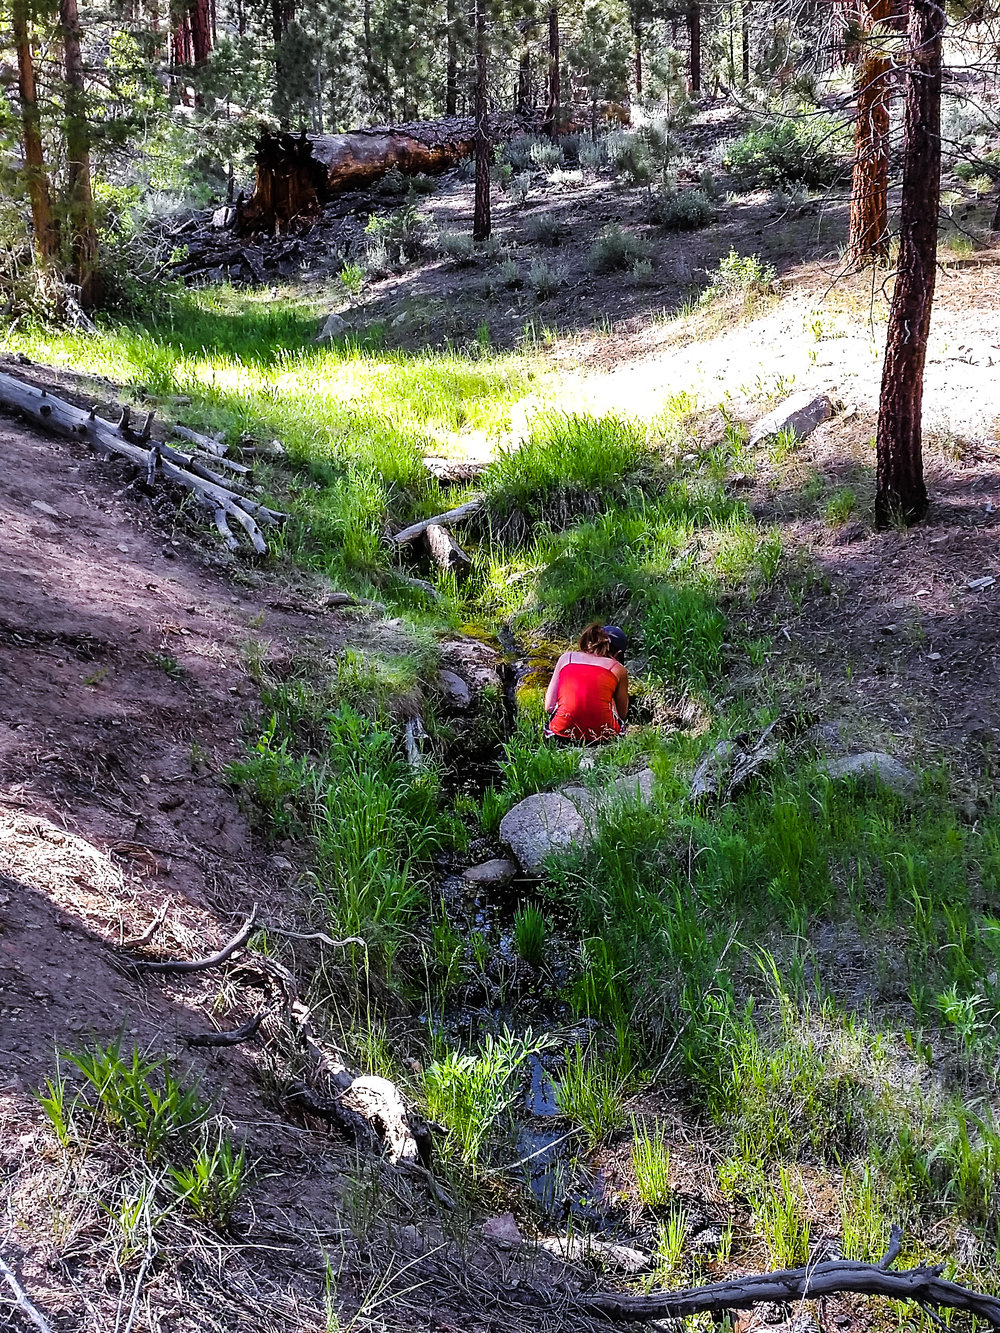 Even in the southern portion of the Sierra, water was scarce